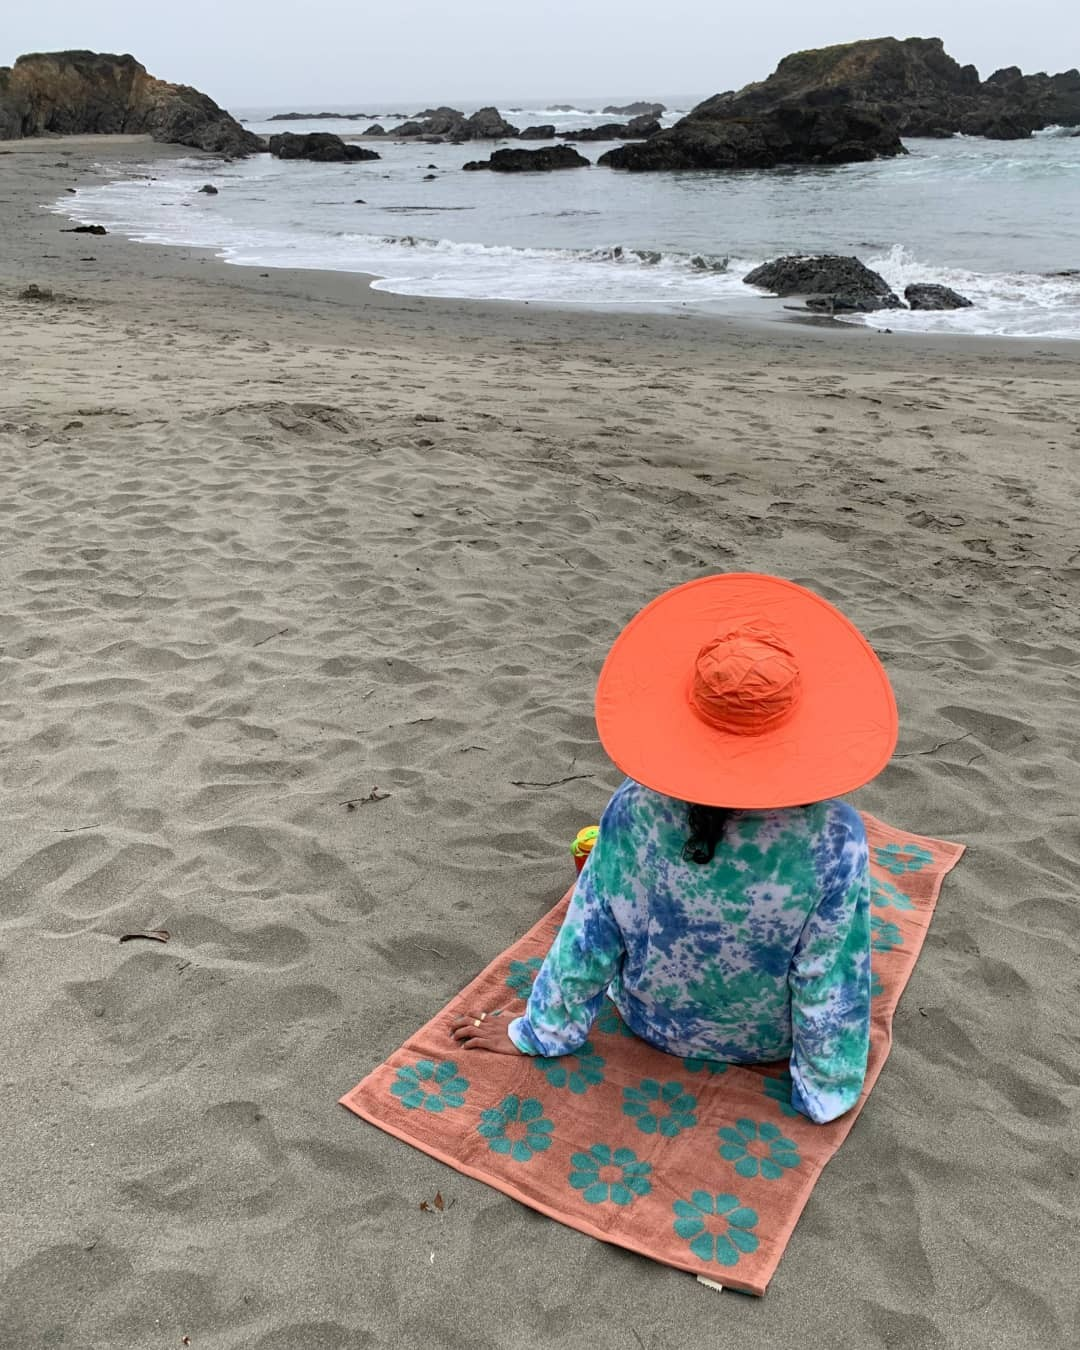 A woman on the beach wearing a red sun hat